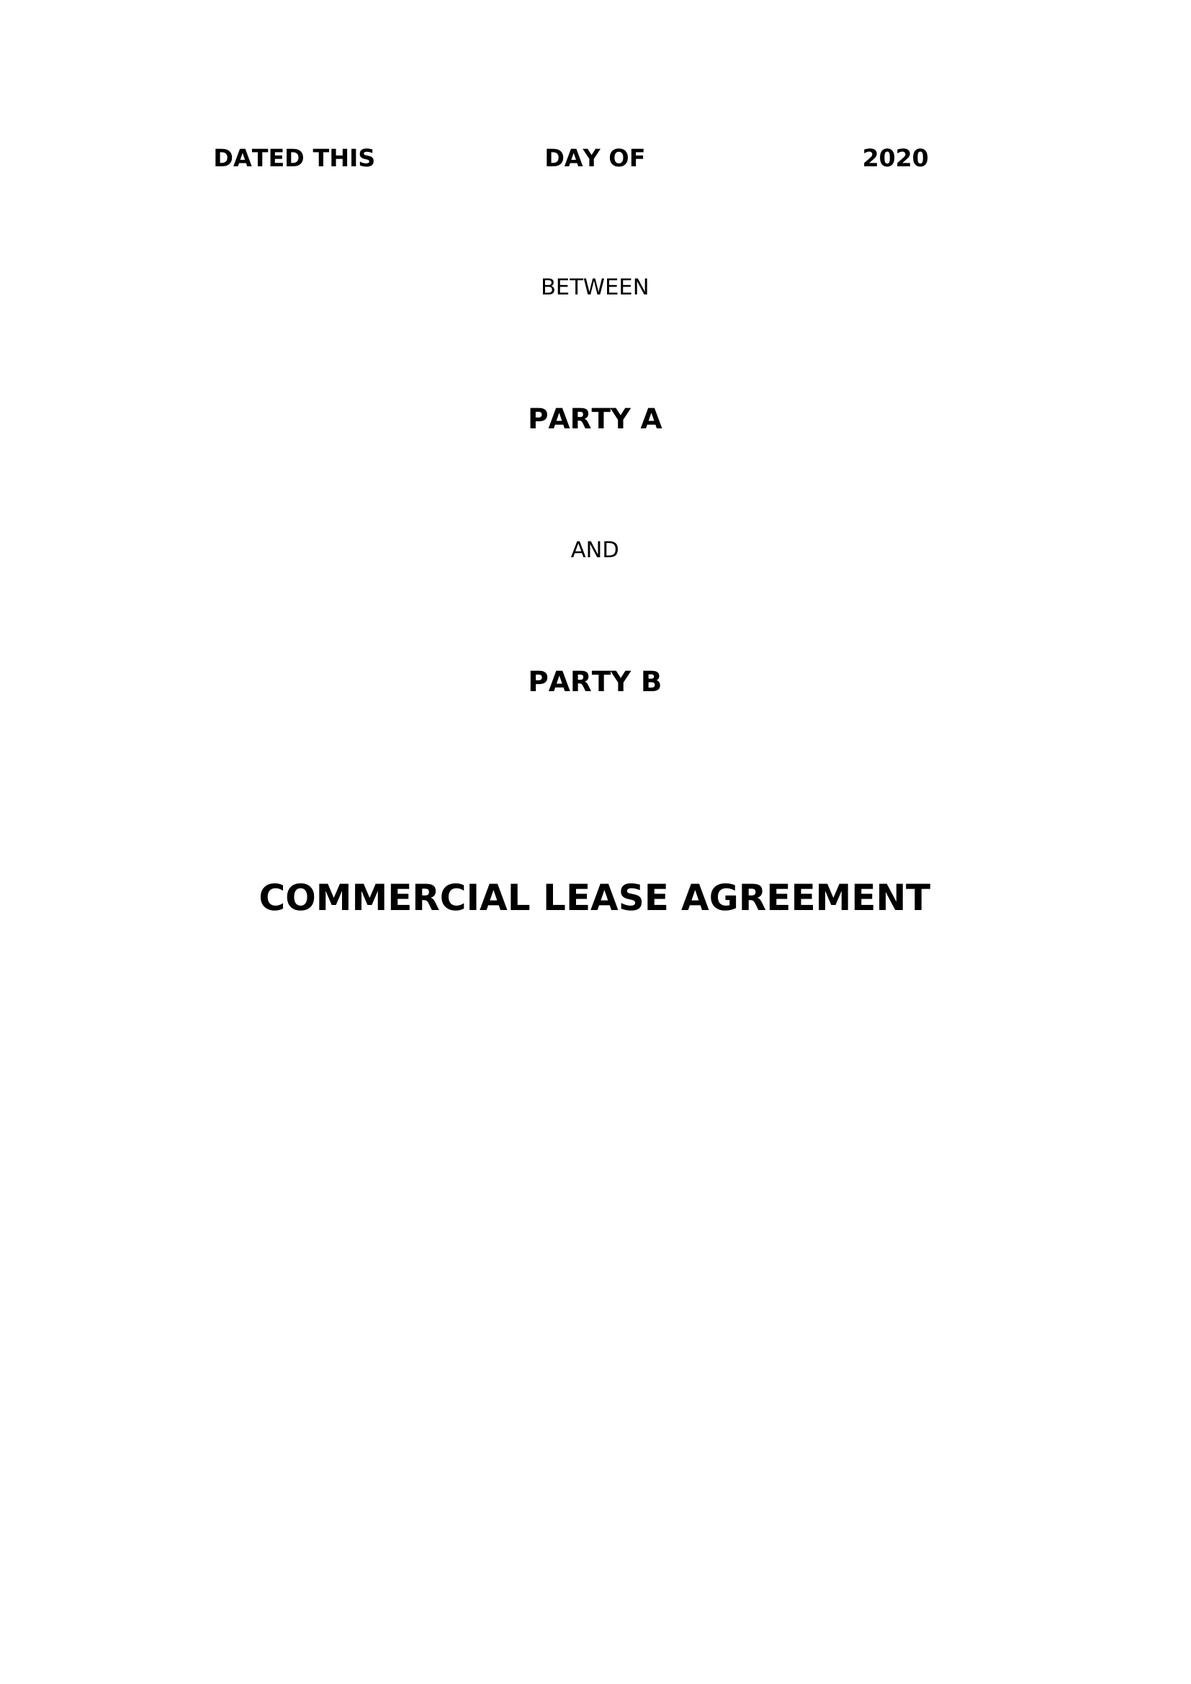 Commercial Lease Agreement for Lease of Hotel Building-0